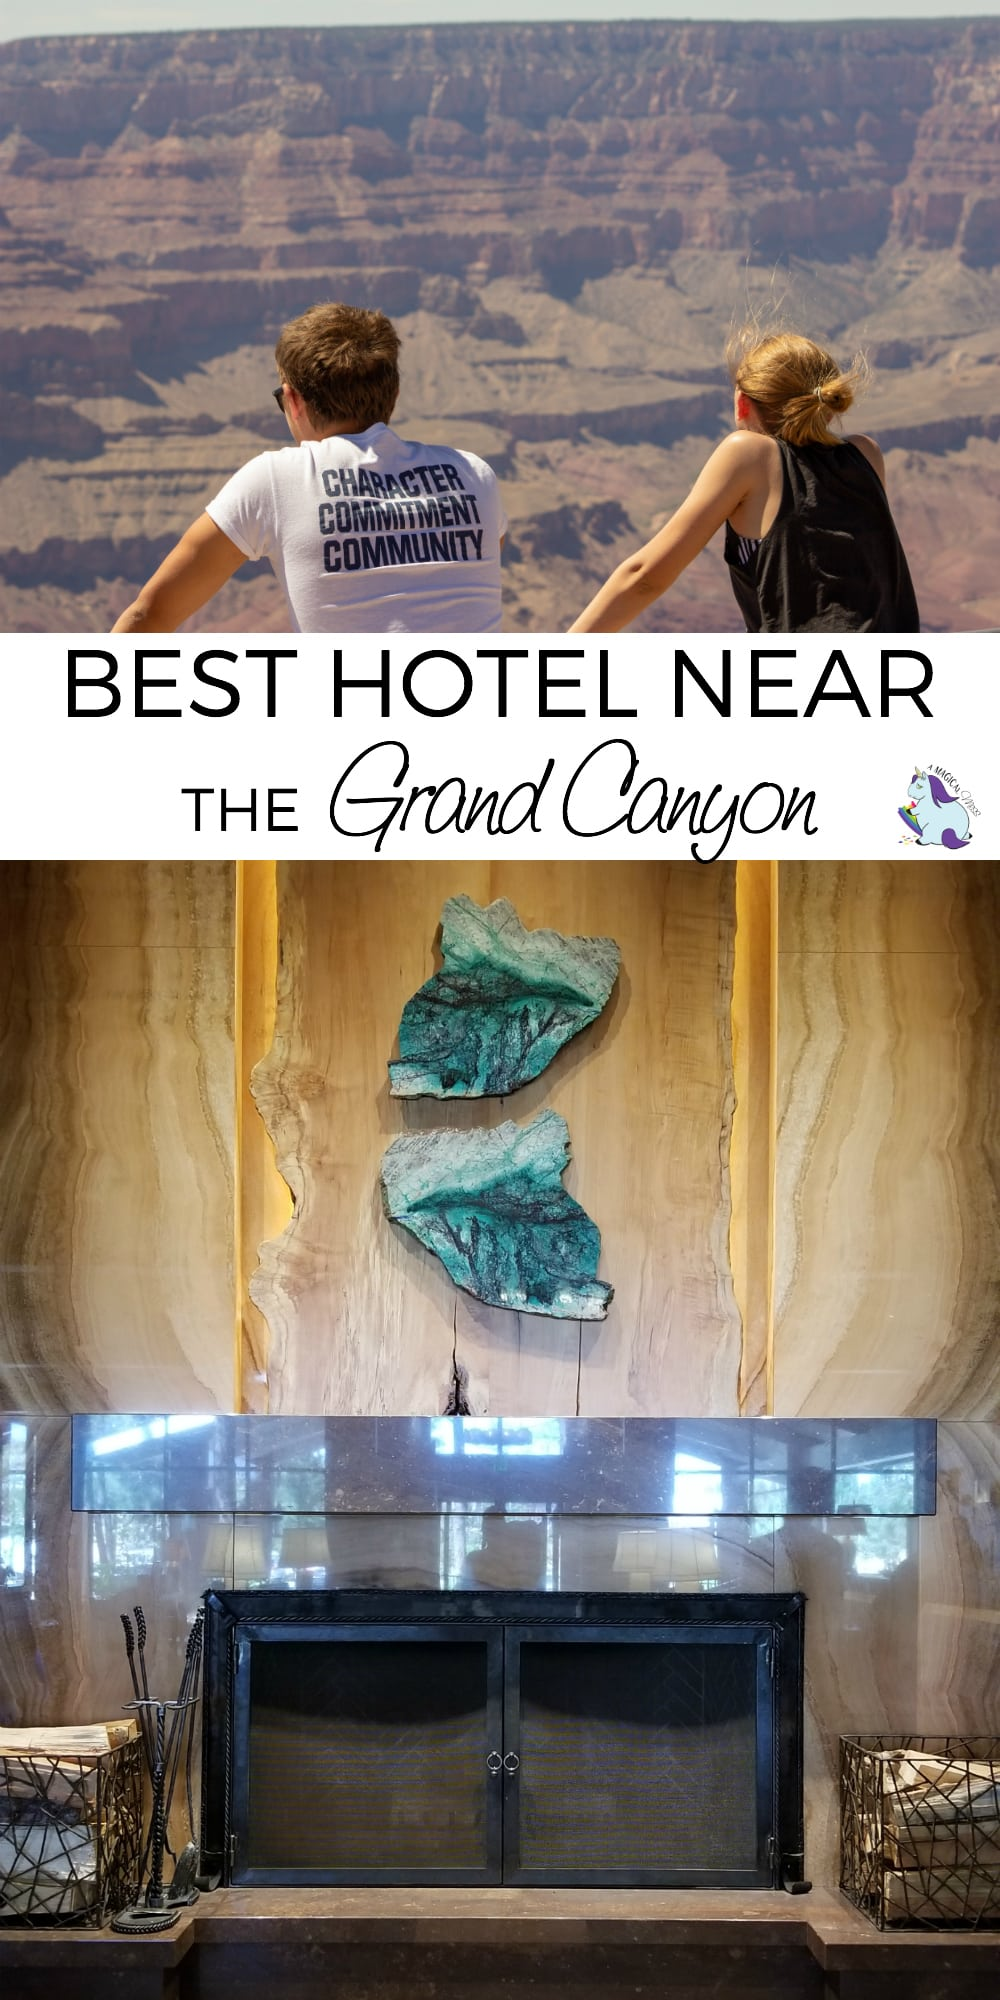 Finding the Best Hotel Near Grand Canyon for an Unforgettable Family Vacation #grandcanyon #arizona #travel #familyfun #nature